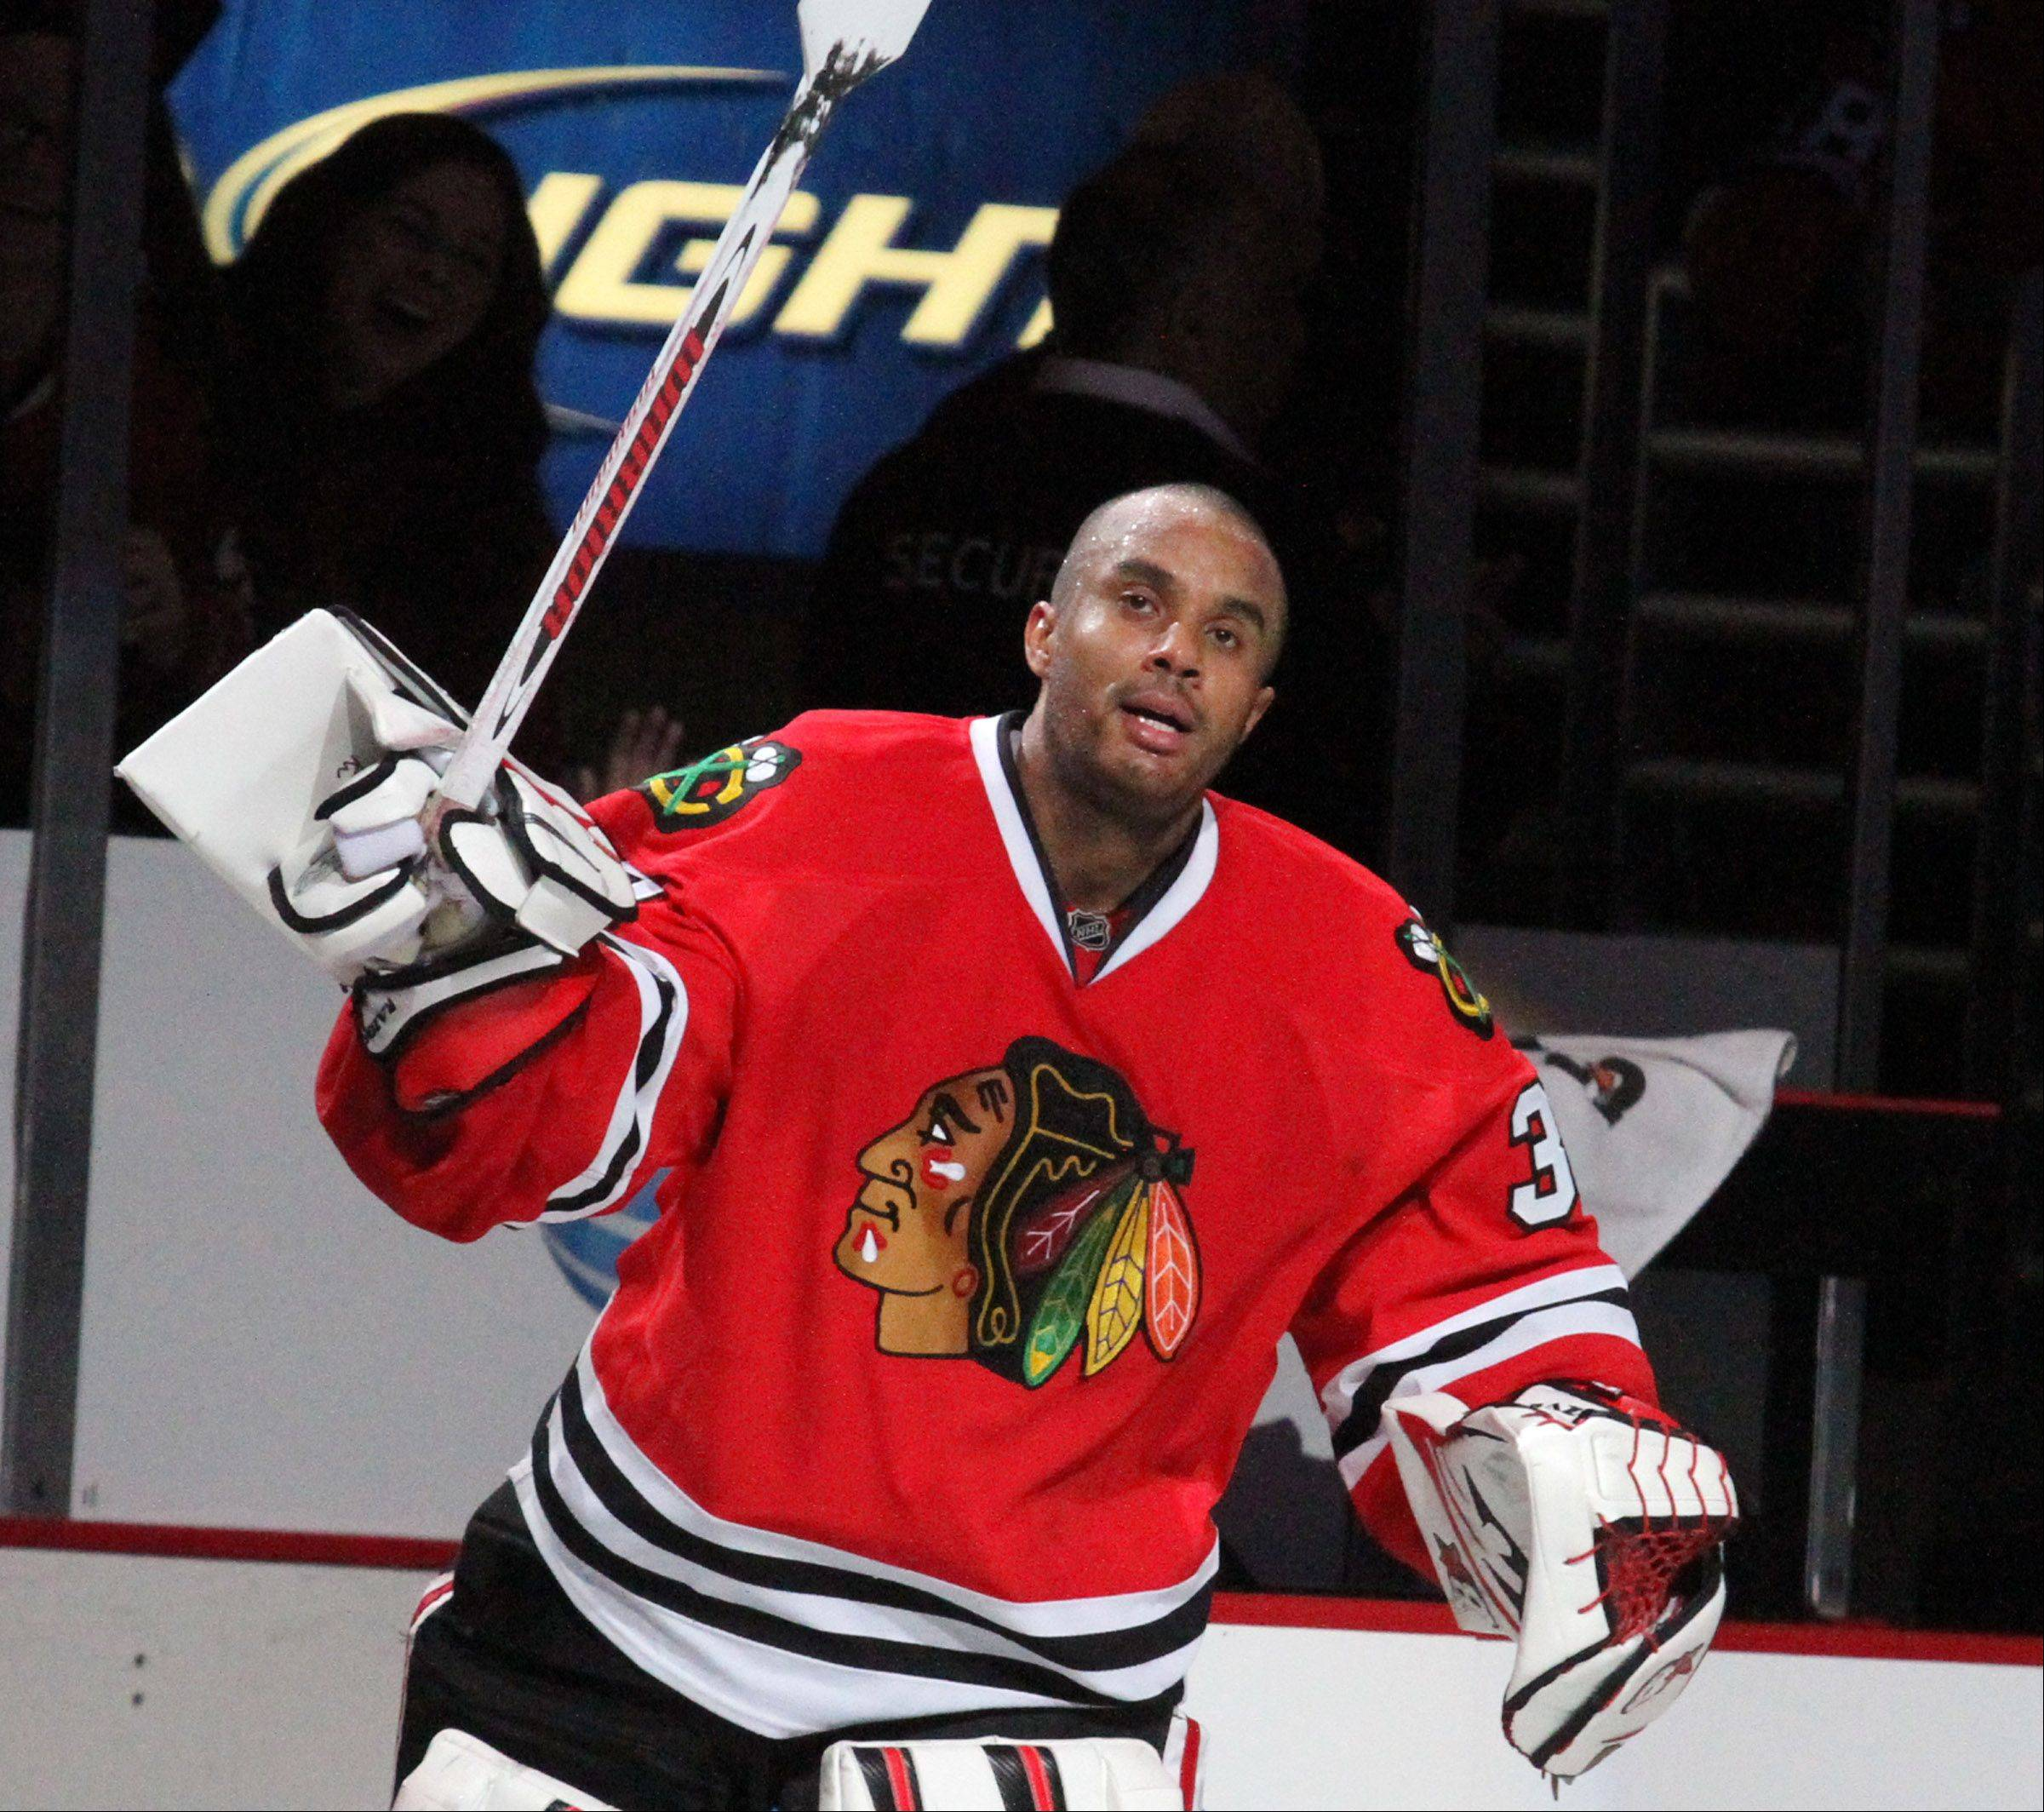 George LeClaire/gleclaire@dailyherald.com Chicago Blackhawks goalie Ray Emery takes the ice after winning over the San Jose Sharks at the United Center on Friday.